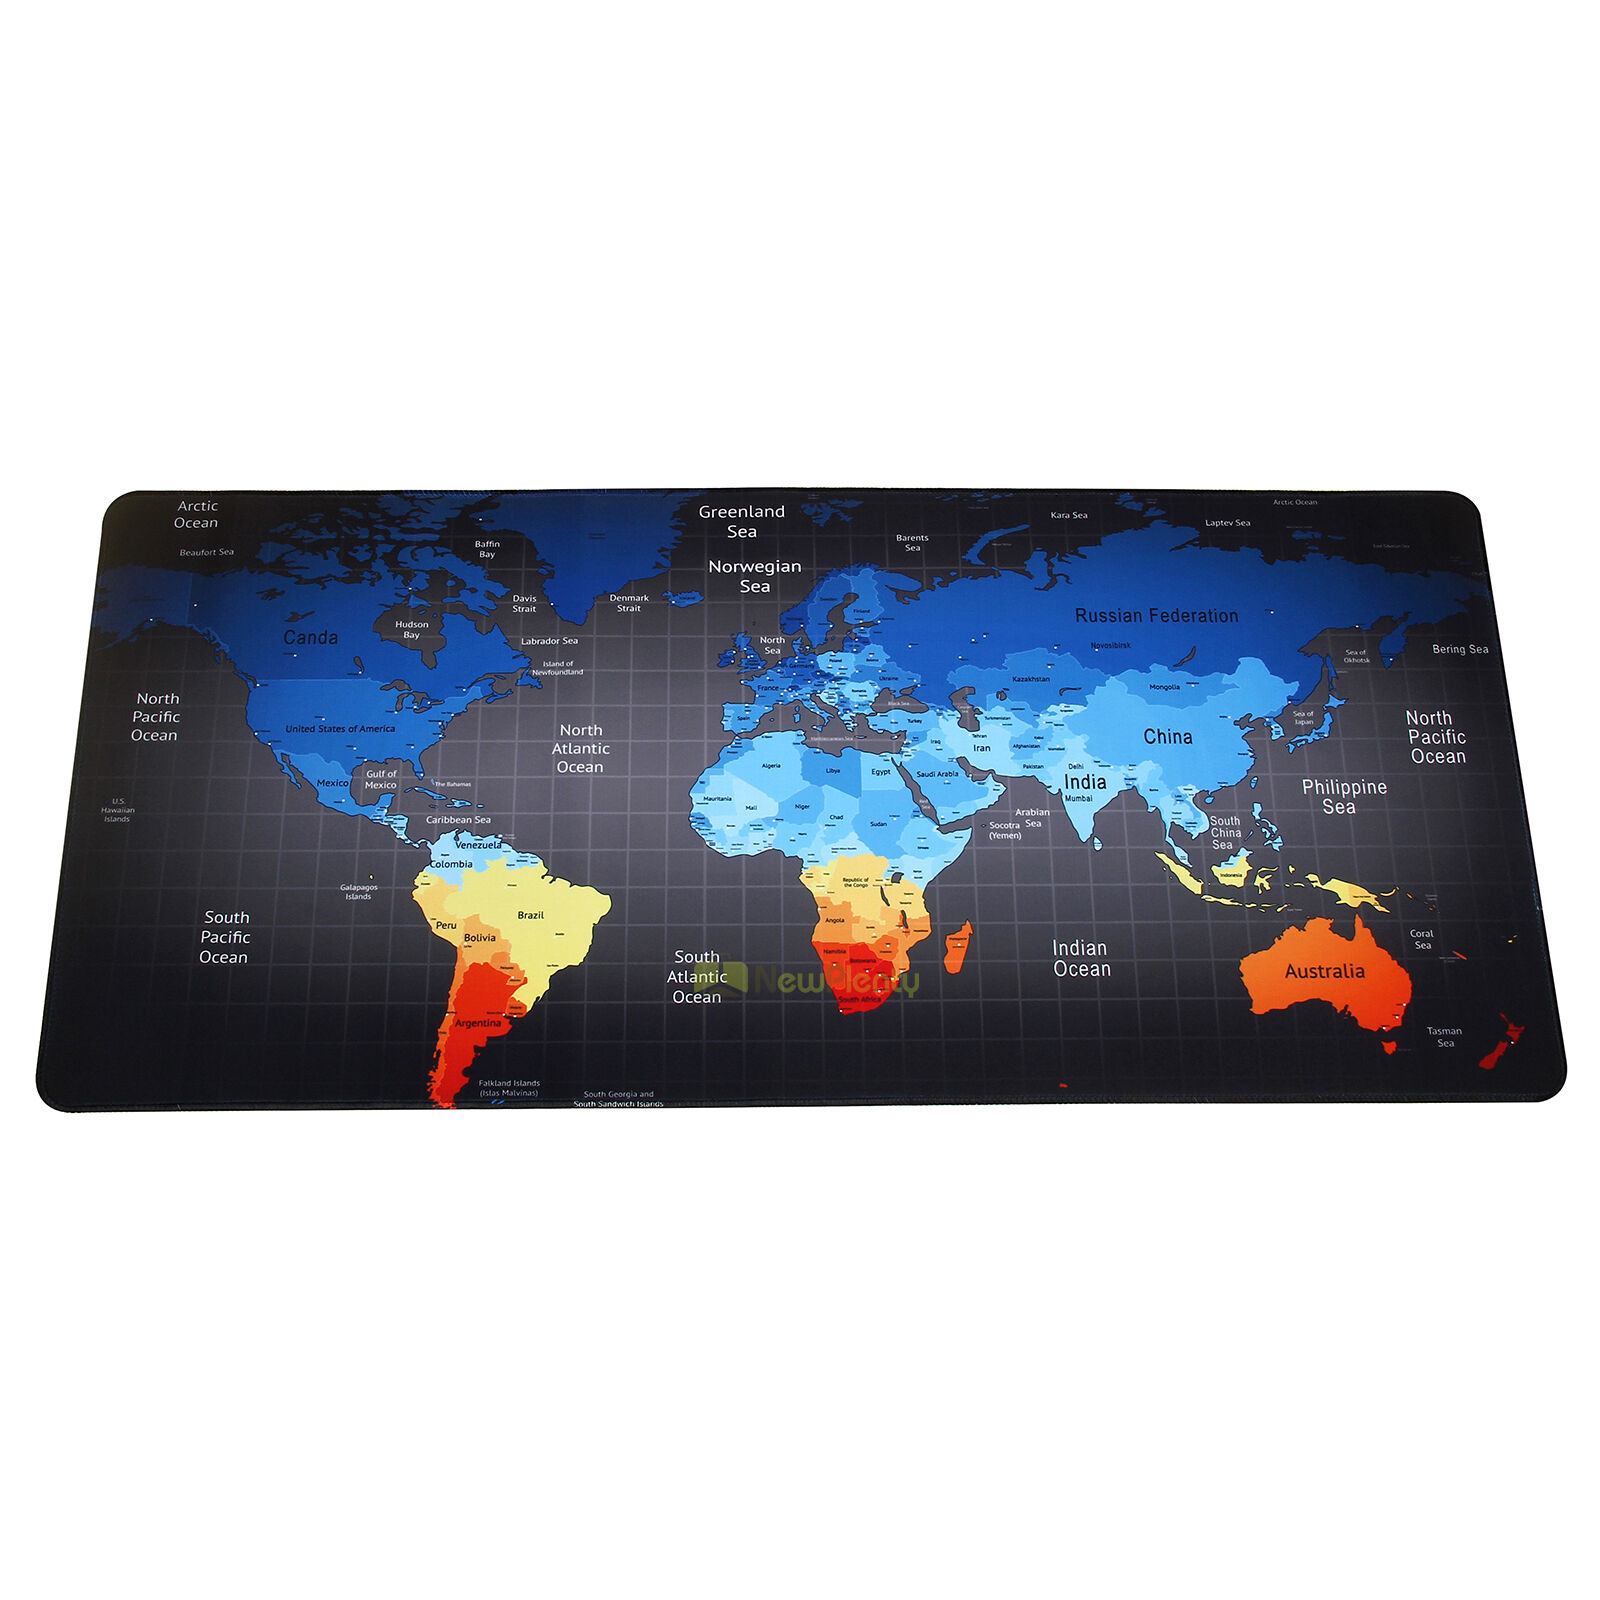 Gran tamao xl velocidad antideslizante mapa del mundo juego mouse extended gaming mouse pad large size desk mat 35 x 157 inches world map edge gumiabroncs Image collections